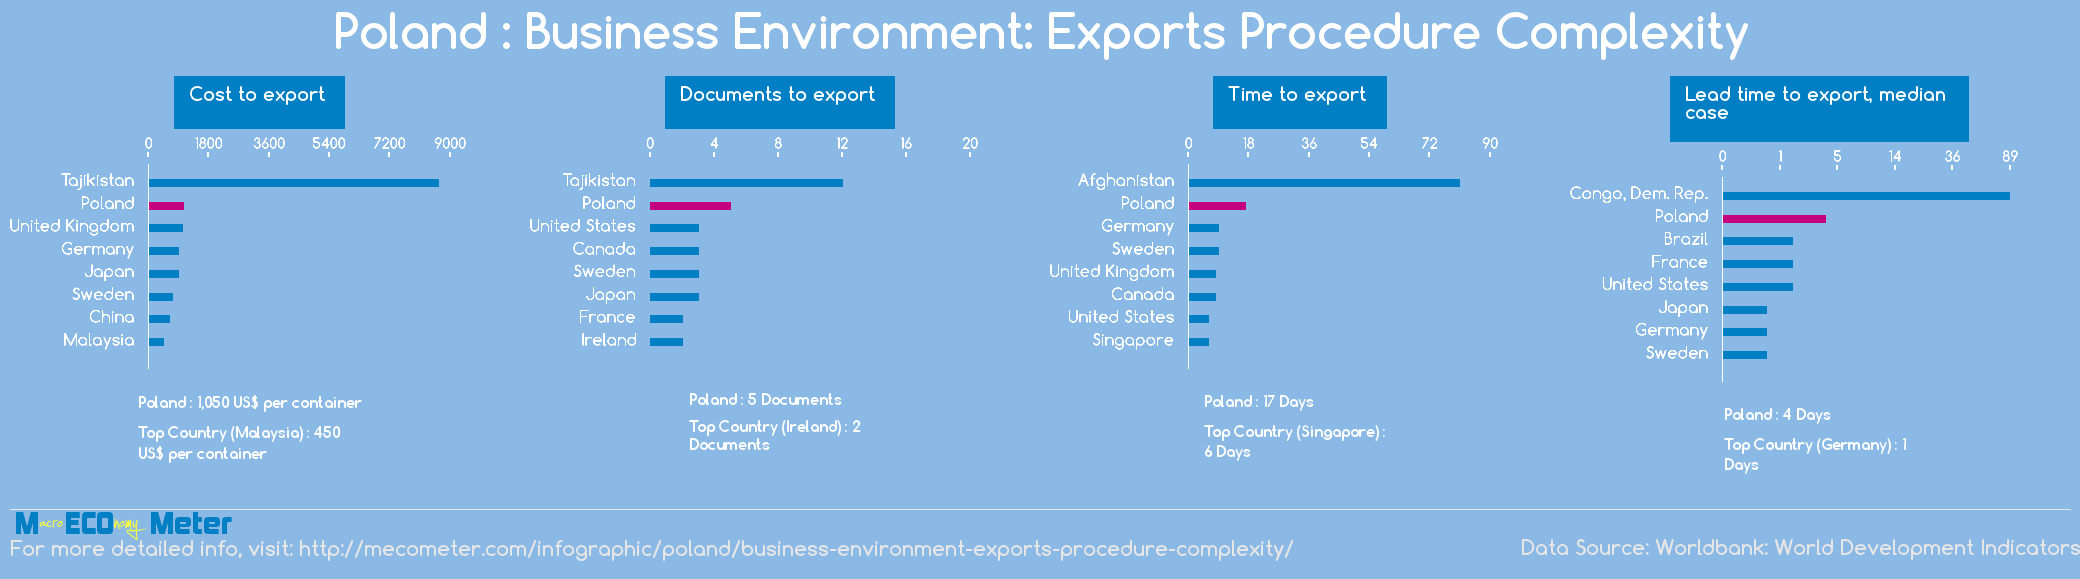 Poland : Business Environment: Exports Procedure Complexity